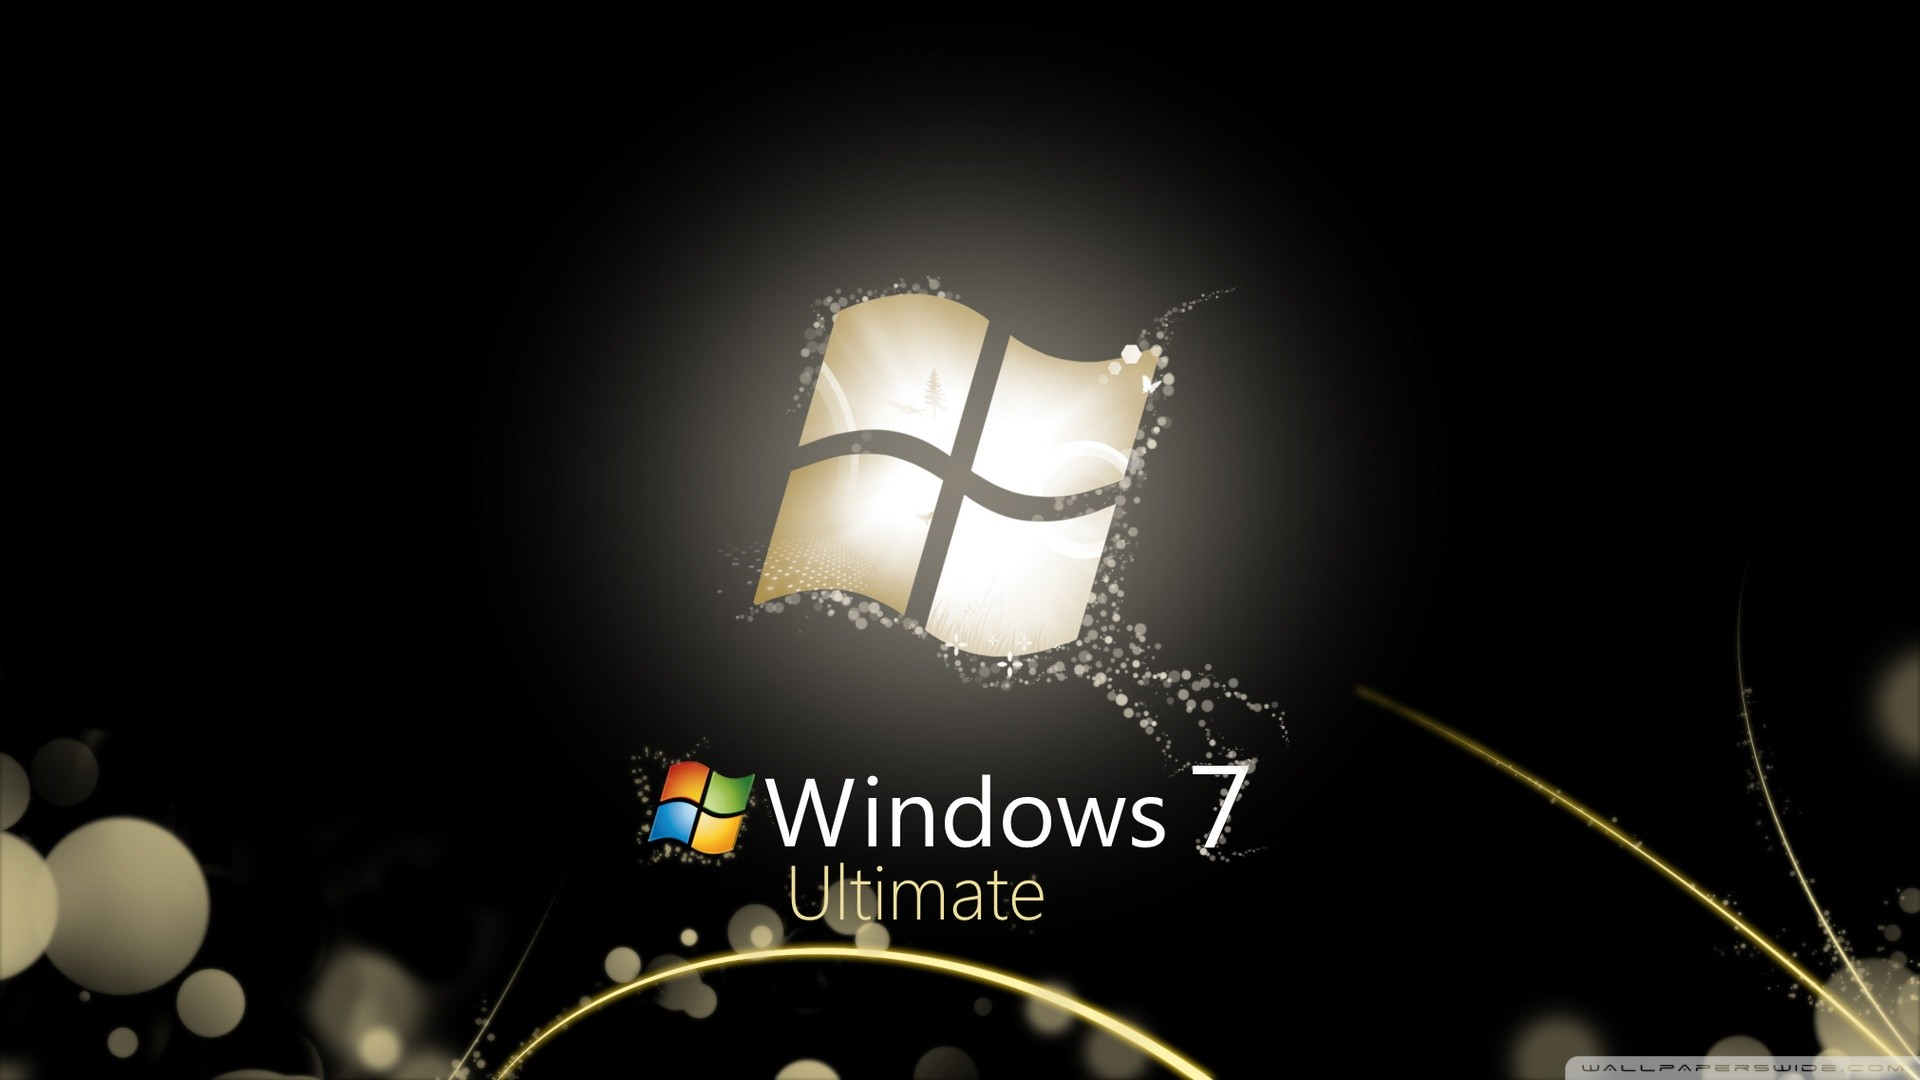 Windows 7 Ultimate Wallpaper HD 50 images 1920x1080